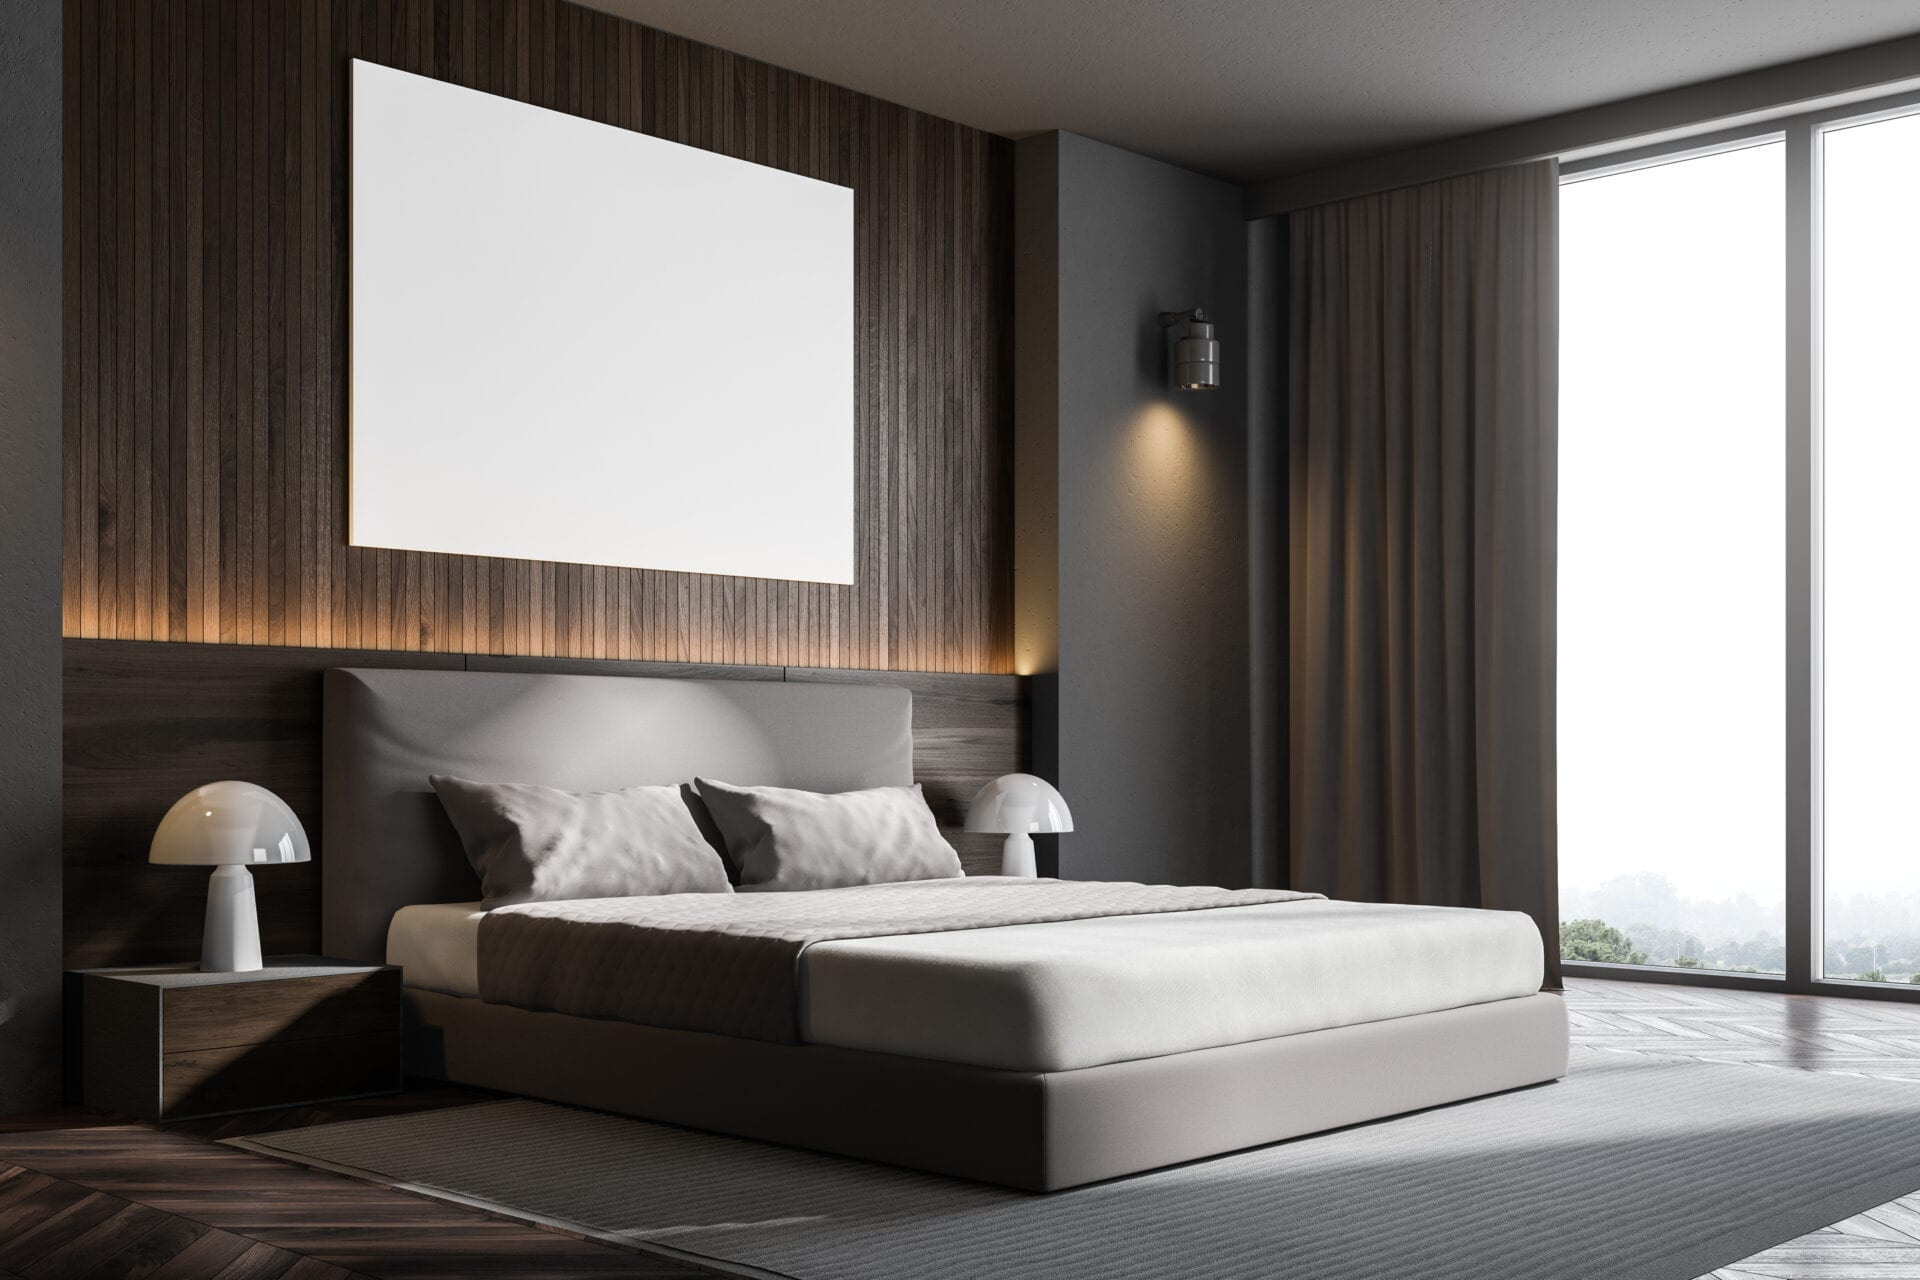 Terra - Wall mounted upholstered, luxury headboard with custom upholstered wall panels - Custom luxury, upholstered beds with high end, bedroom textiles   Blend Home Furnishings